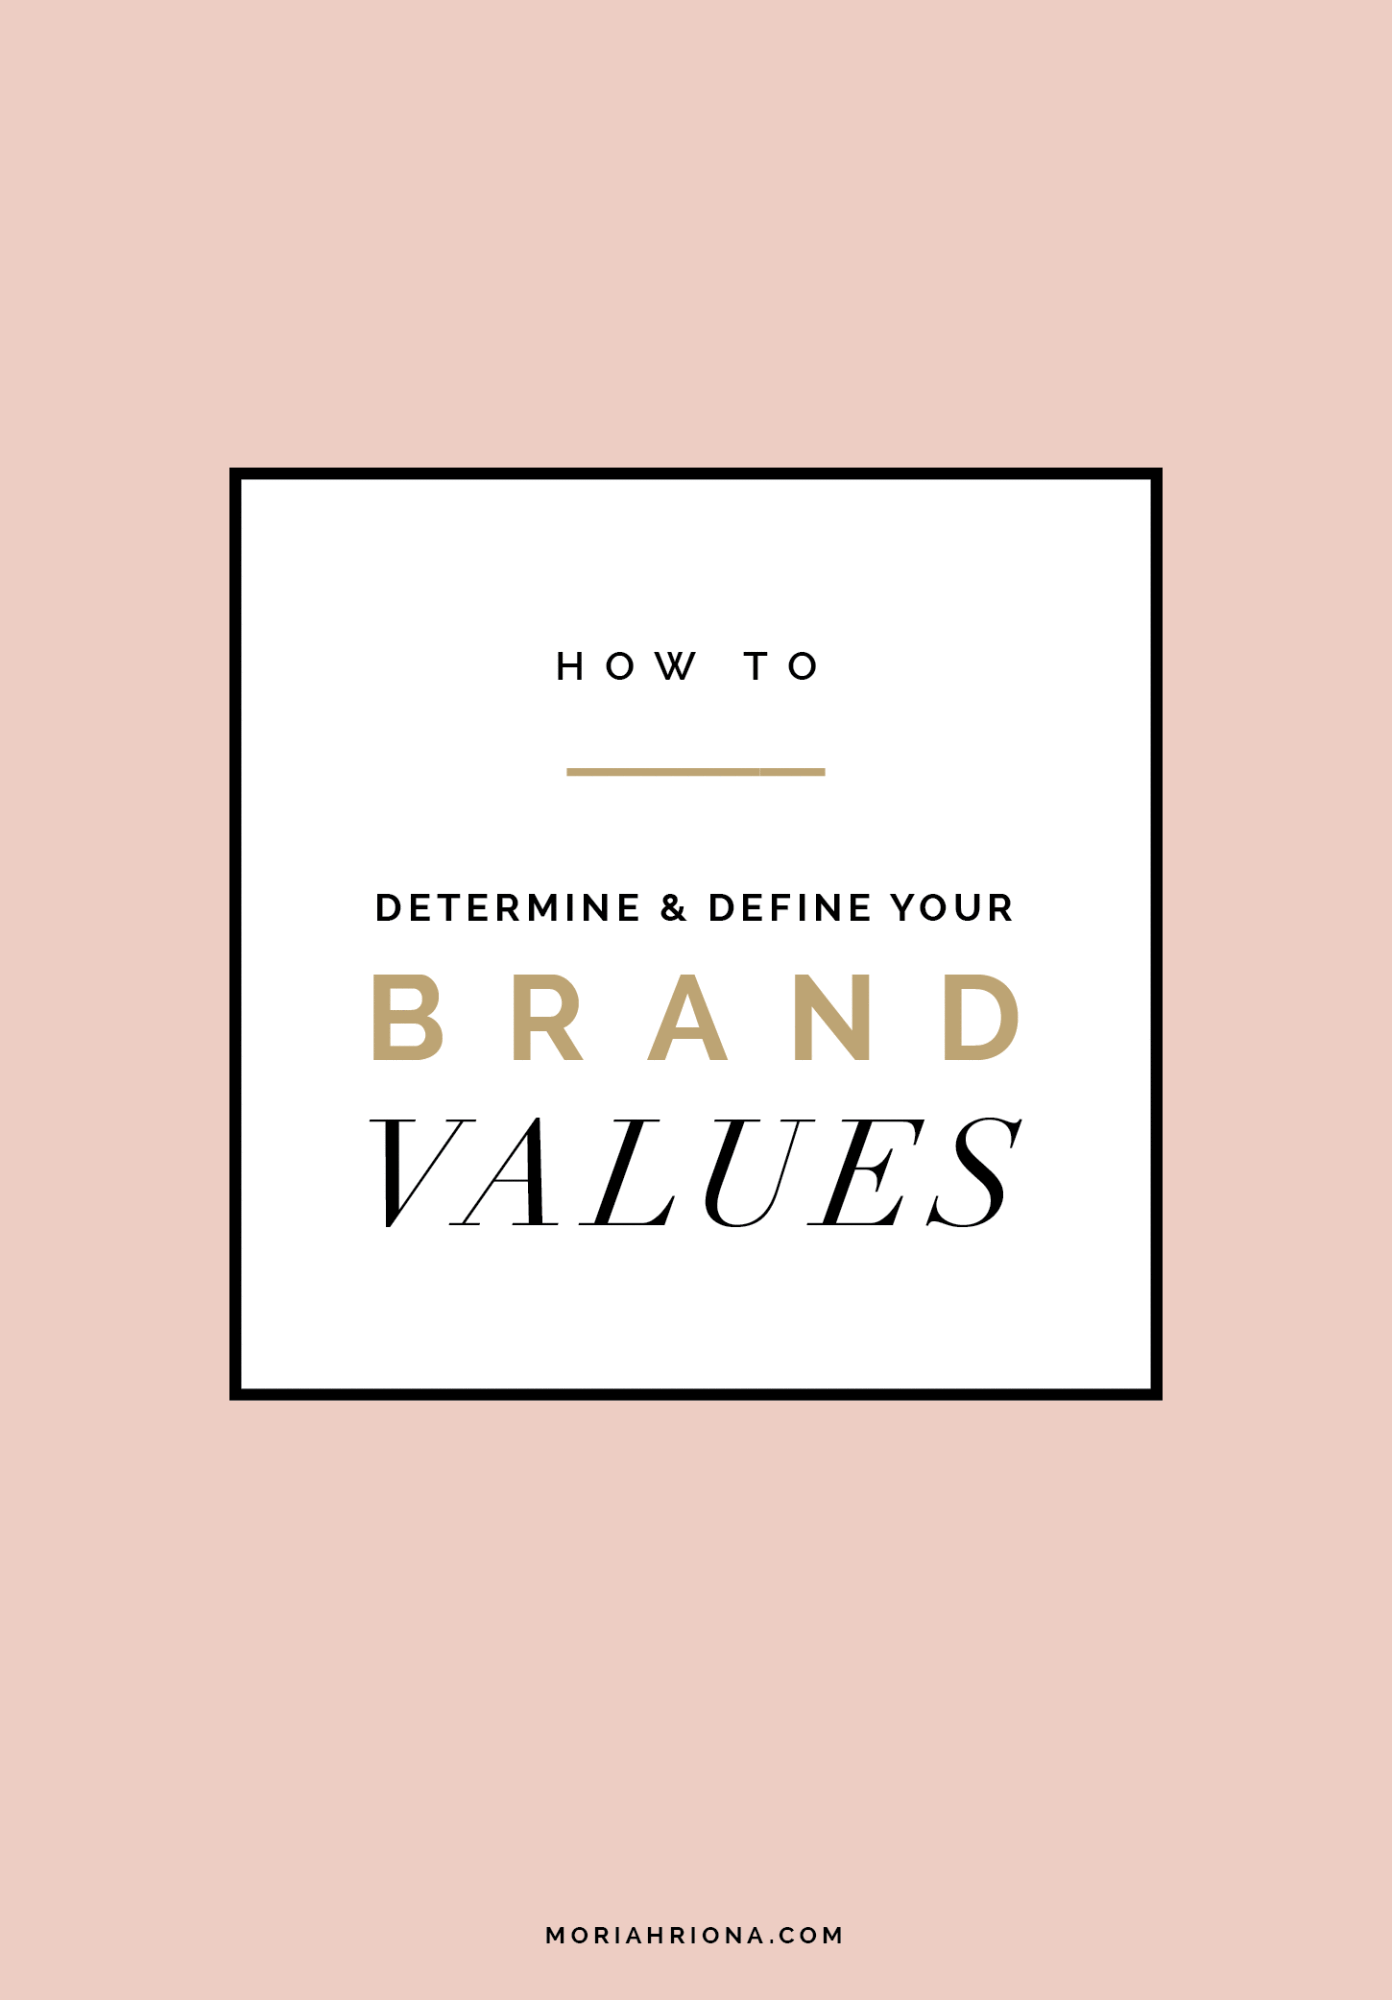 How to Determine & Define Your Brand Values